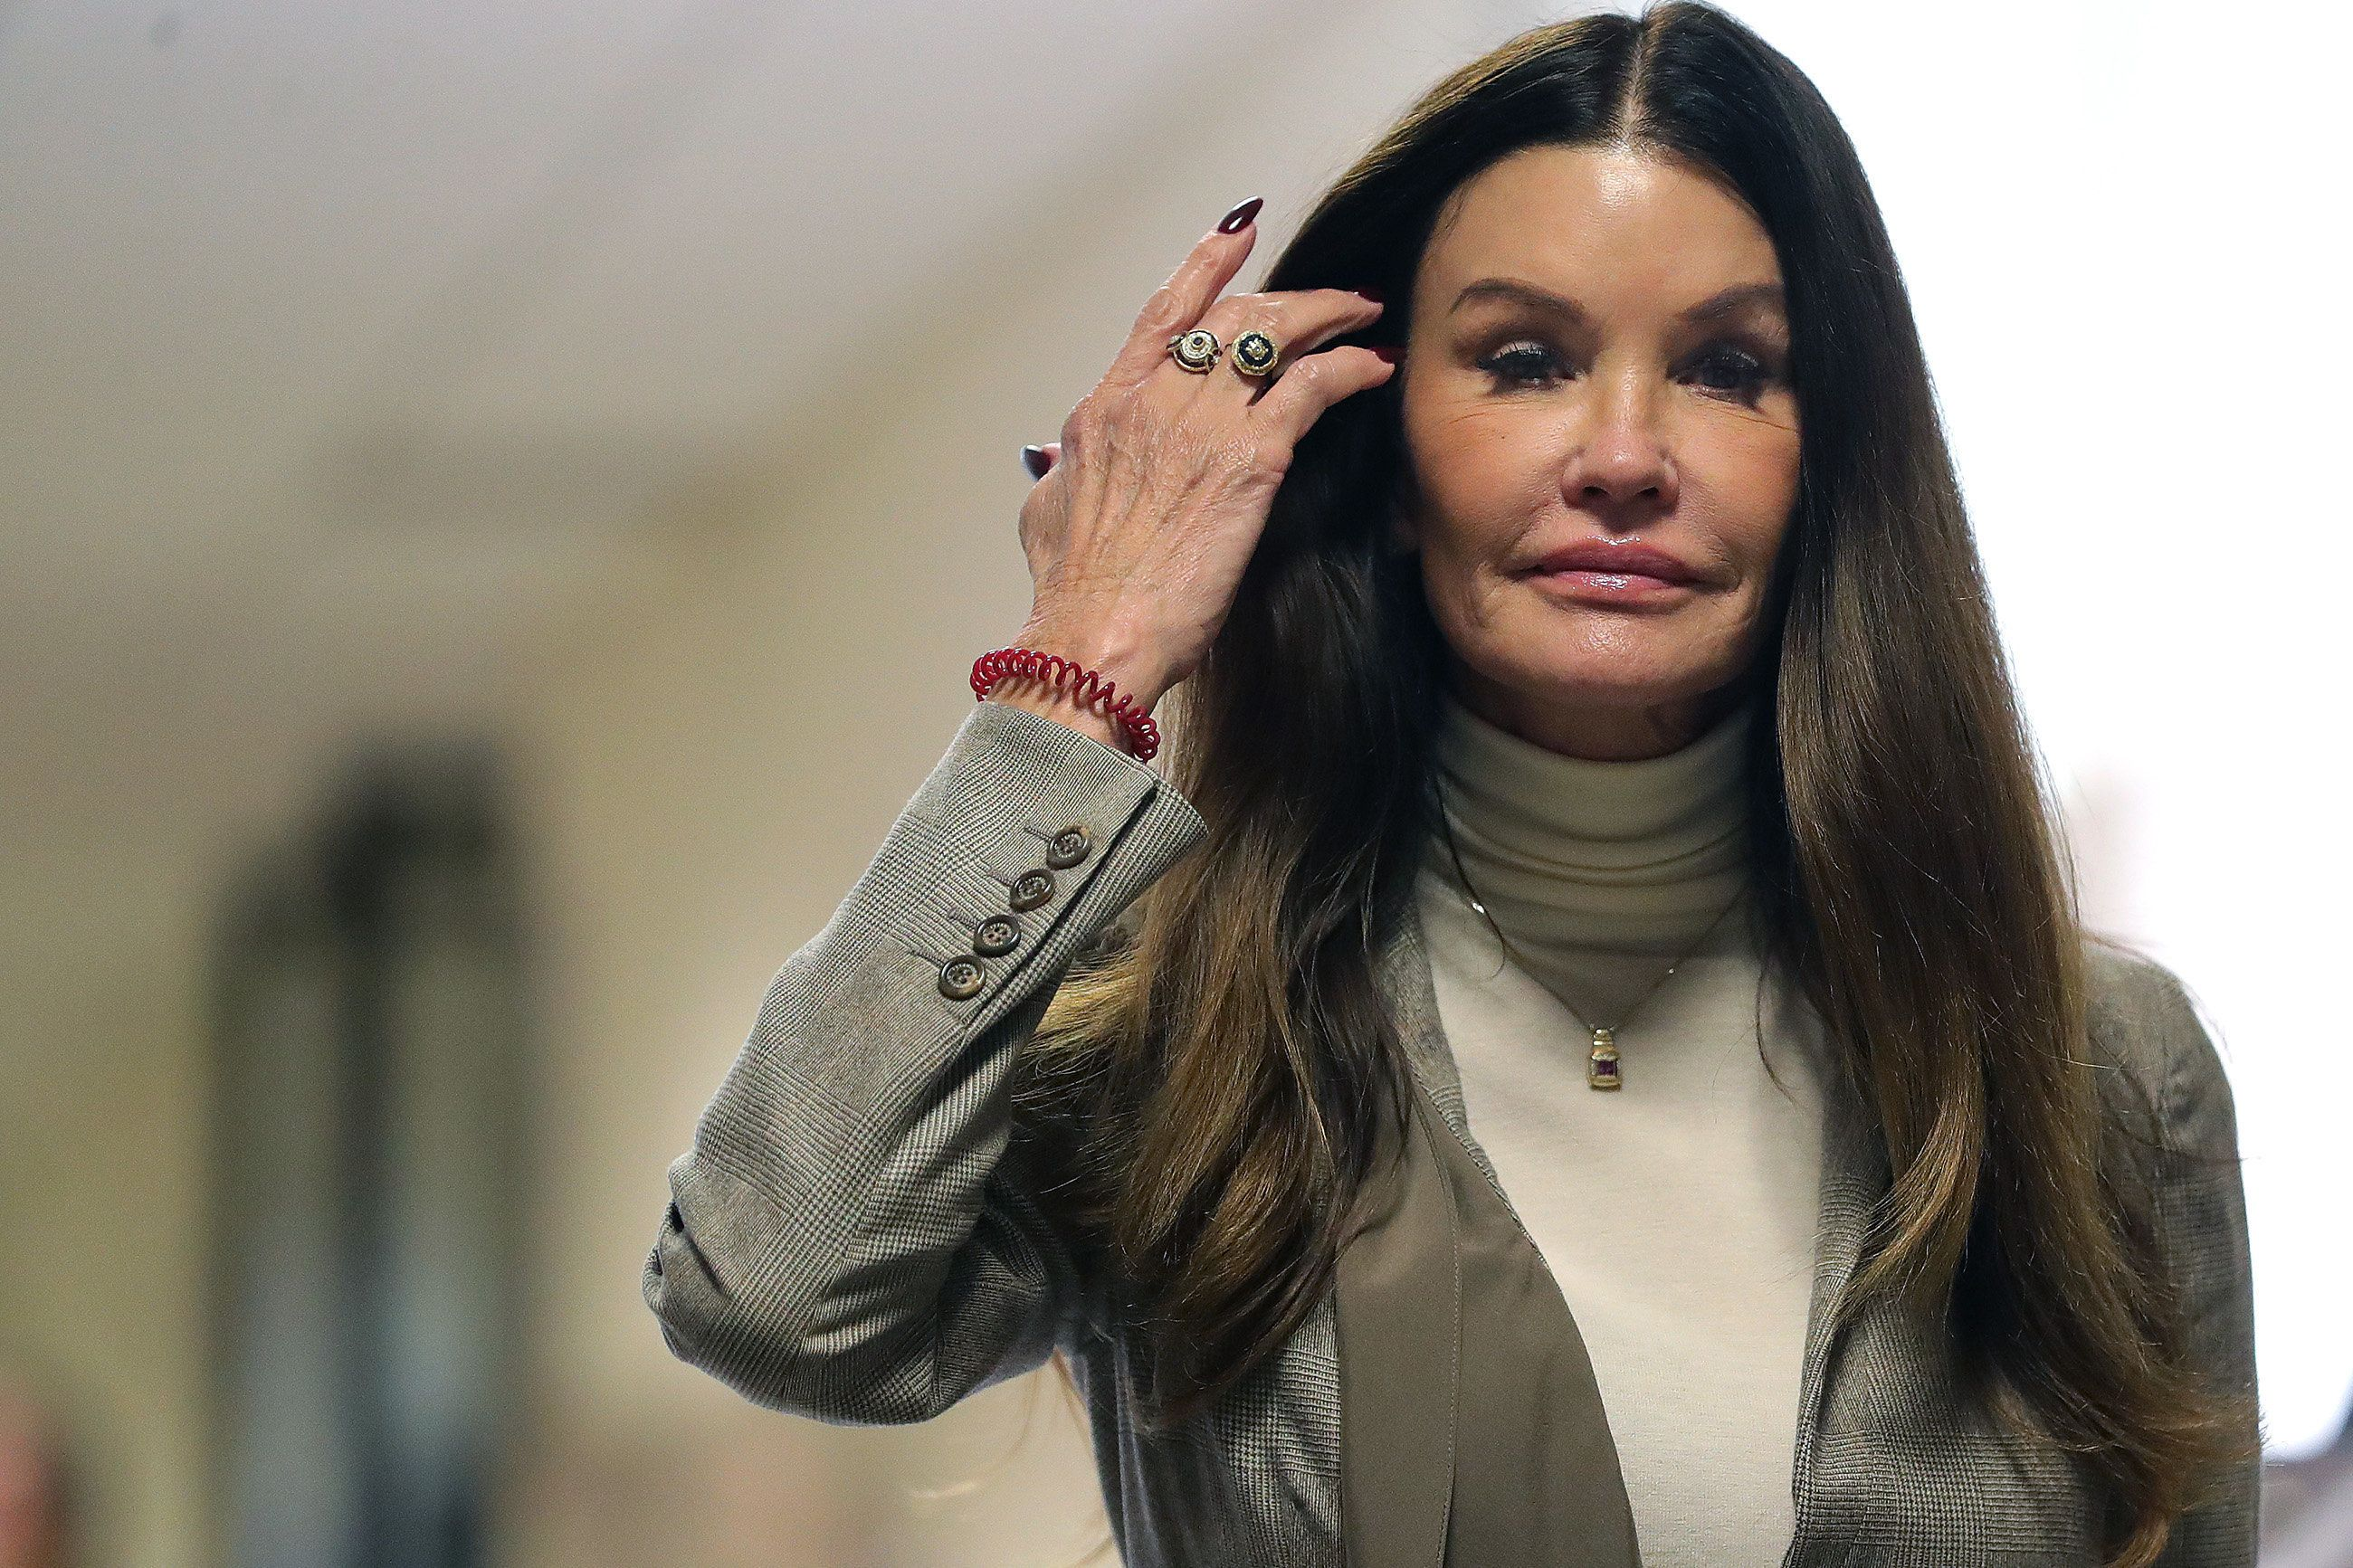 Janice Dickinson Laughs At Bill Cosby In Court: 'I Got The Last Laugh,